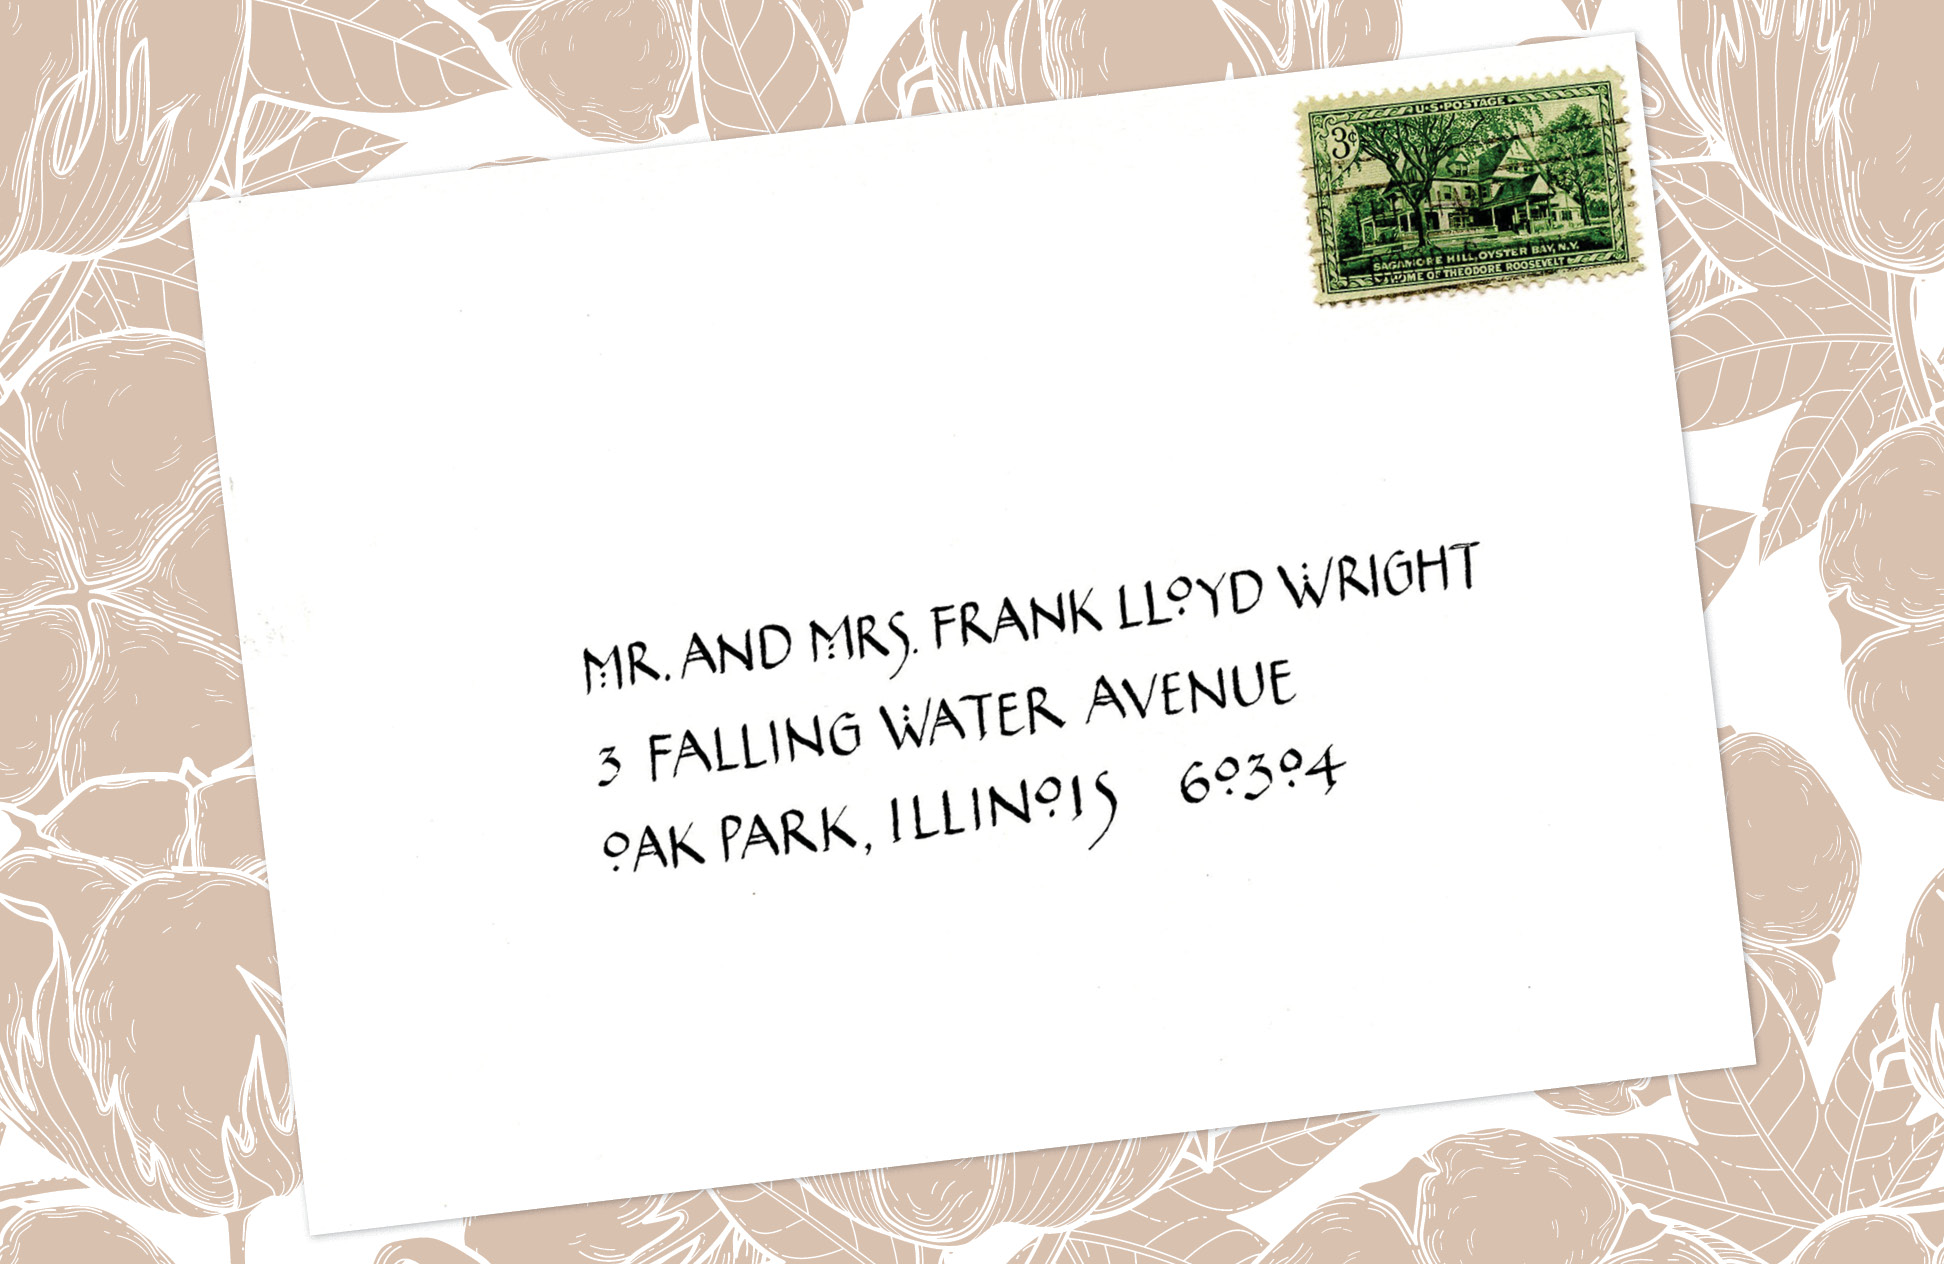 26. Style: Mr. and Mrs. Frank Lloyd Wright (MacIntosh)